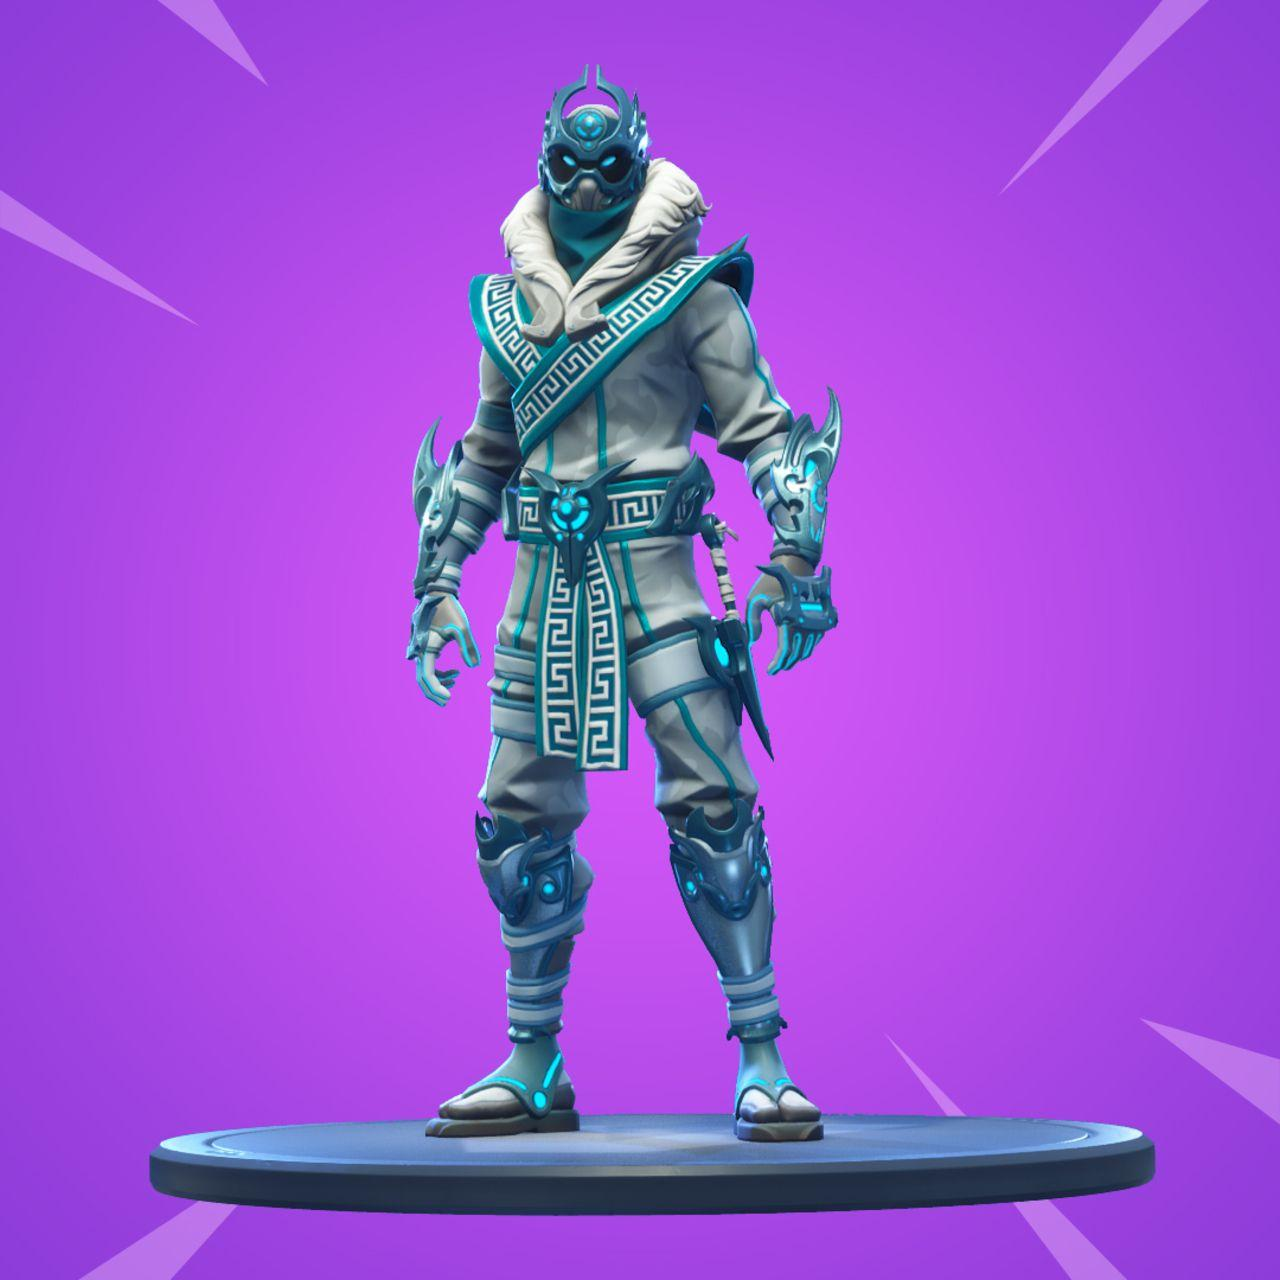 Fortnite Snowfoot Outfit: How to Get This Outfit, What It Looks Like